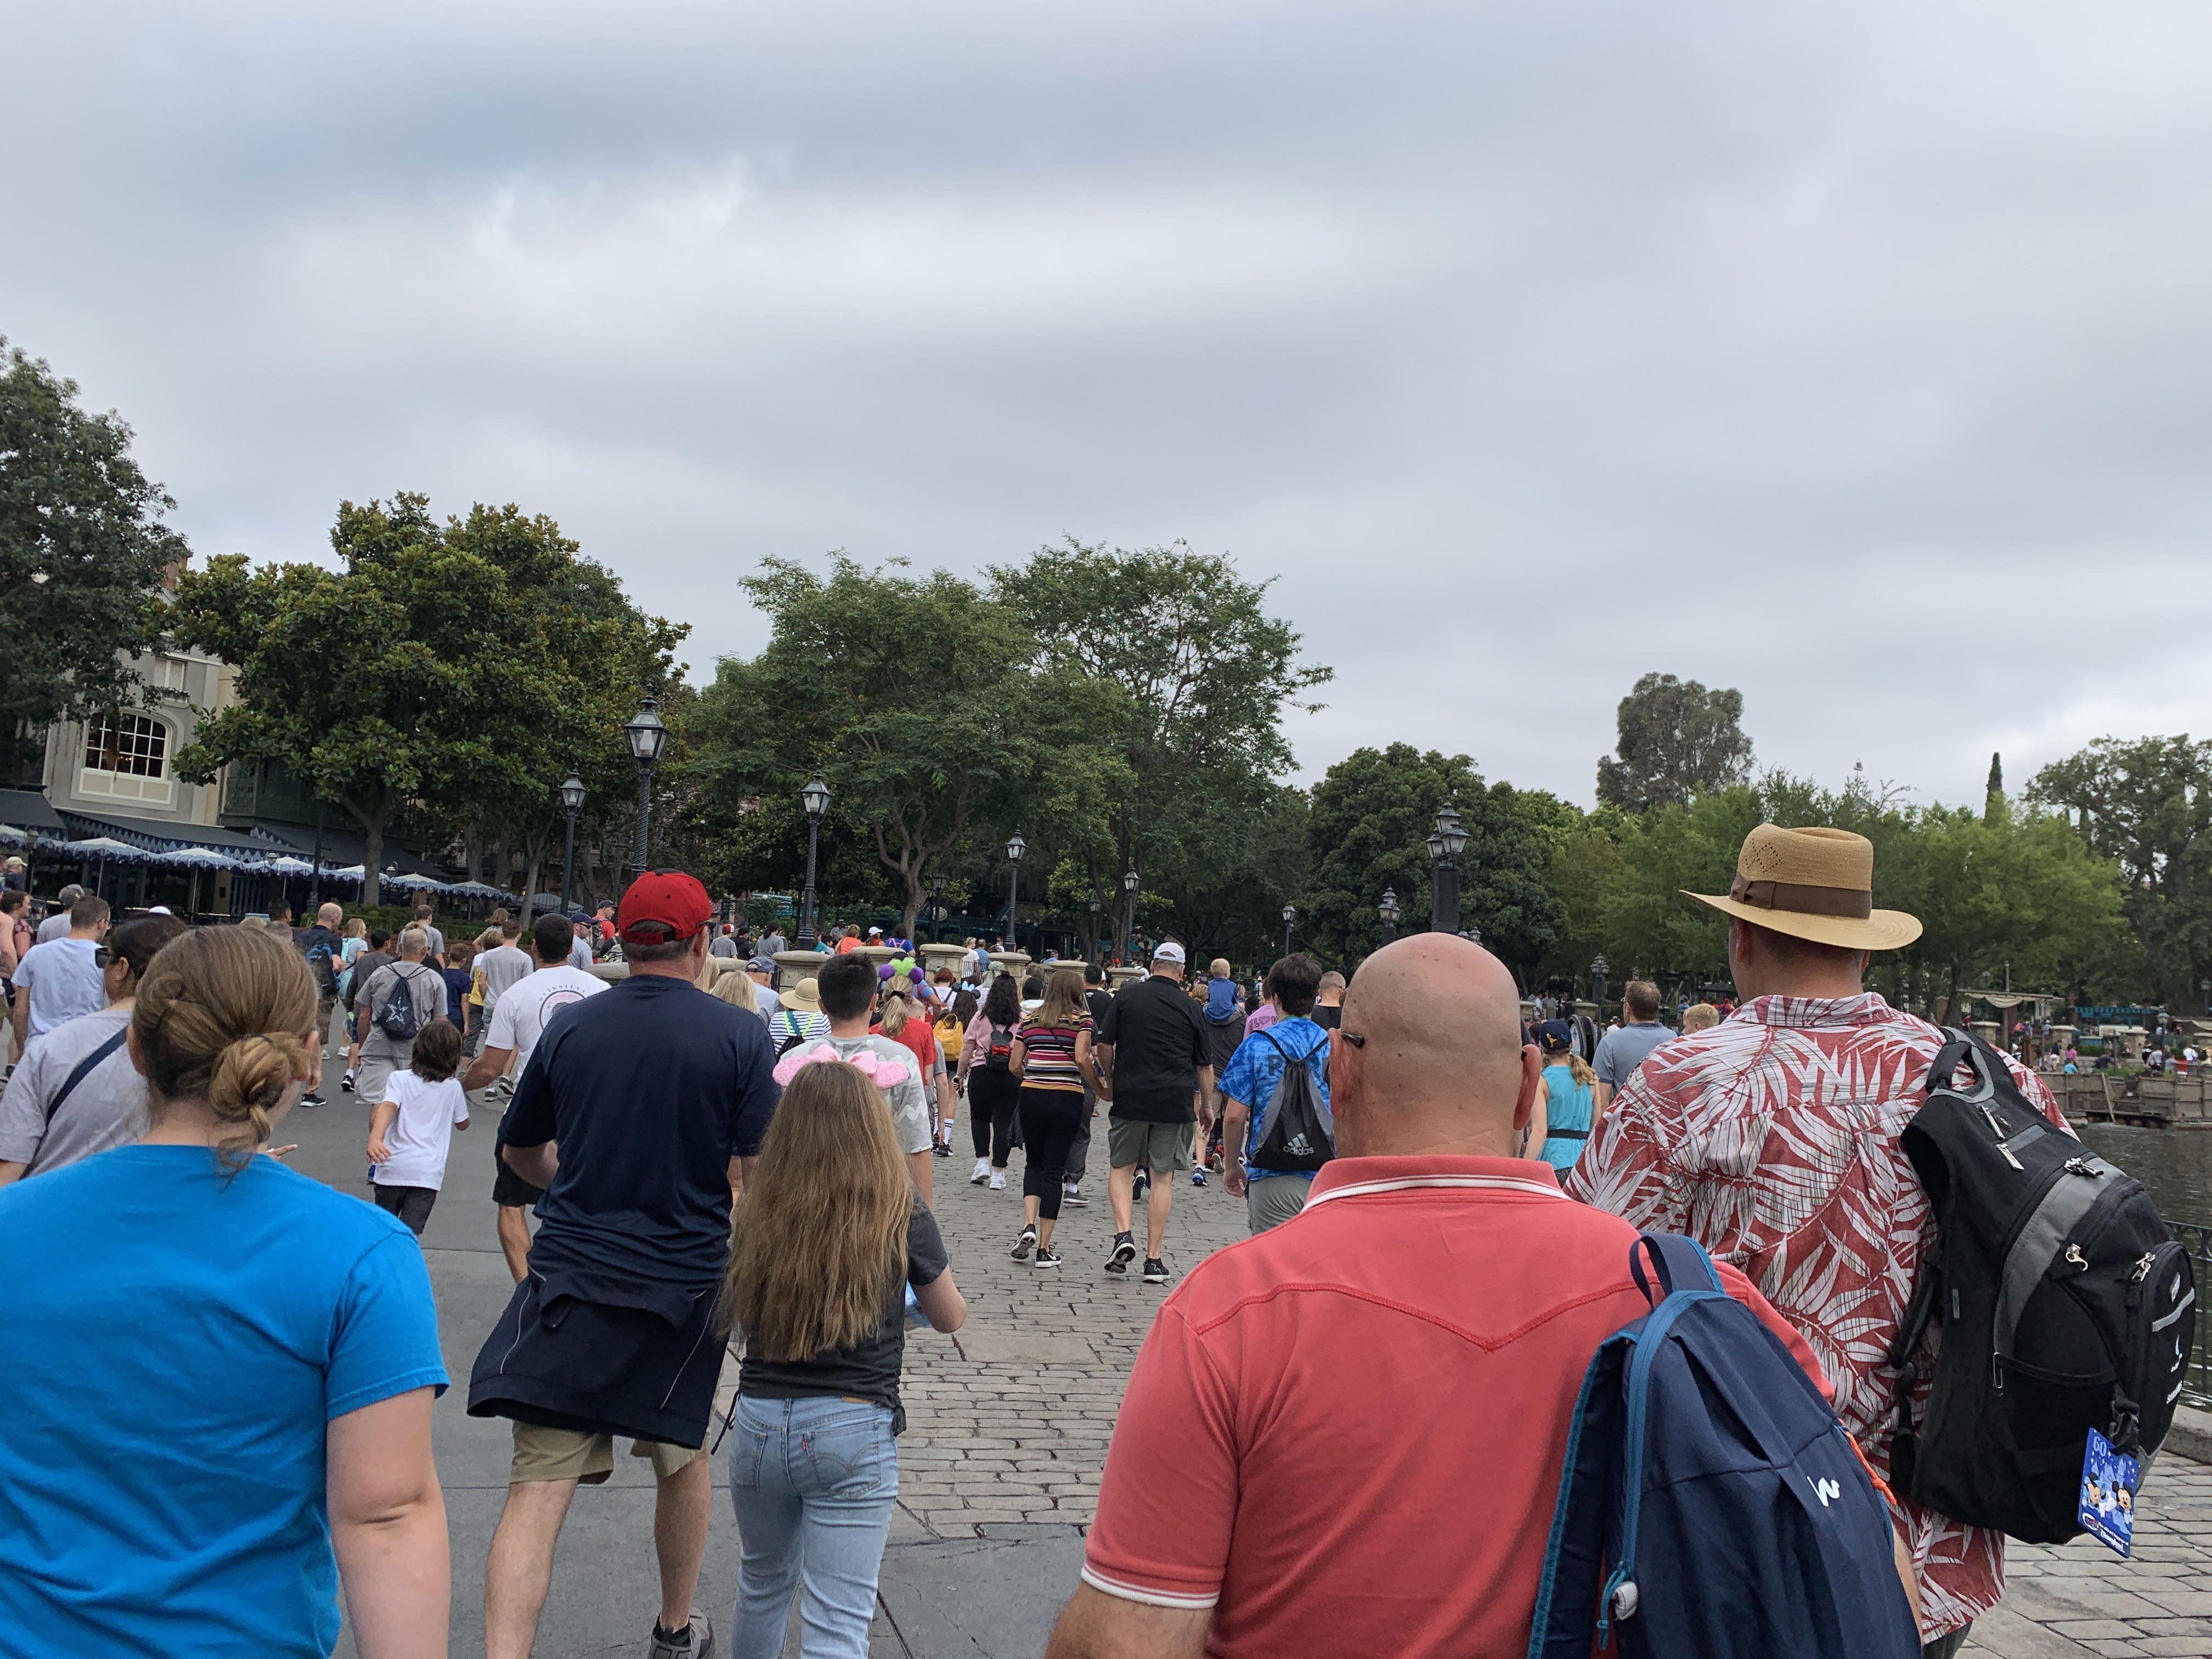 A view of the crowd running in to Galaxy's Edge when the rope dropped at Disneyland.